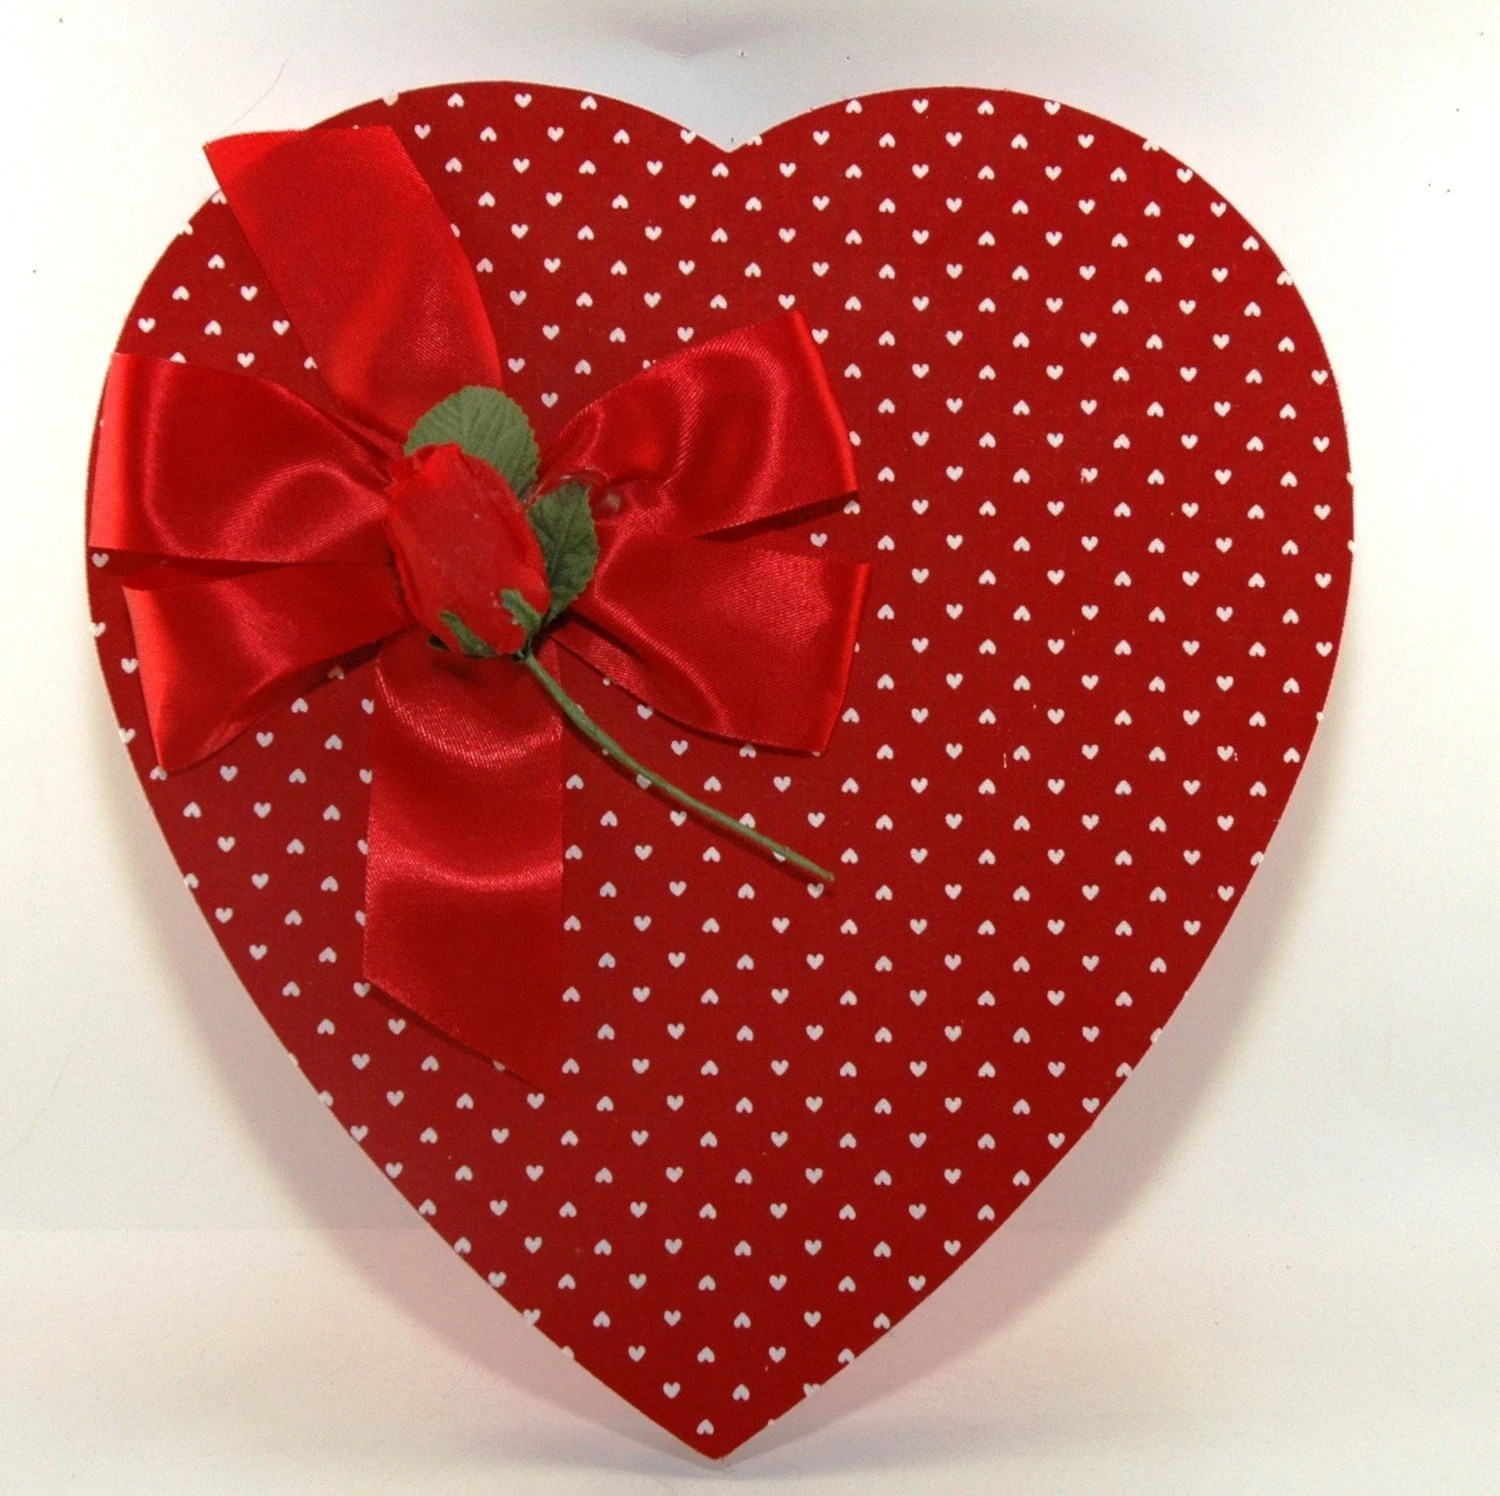 Vintage Valentine Red Dots Heart Shaped Candy Box